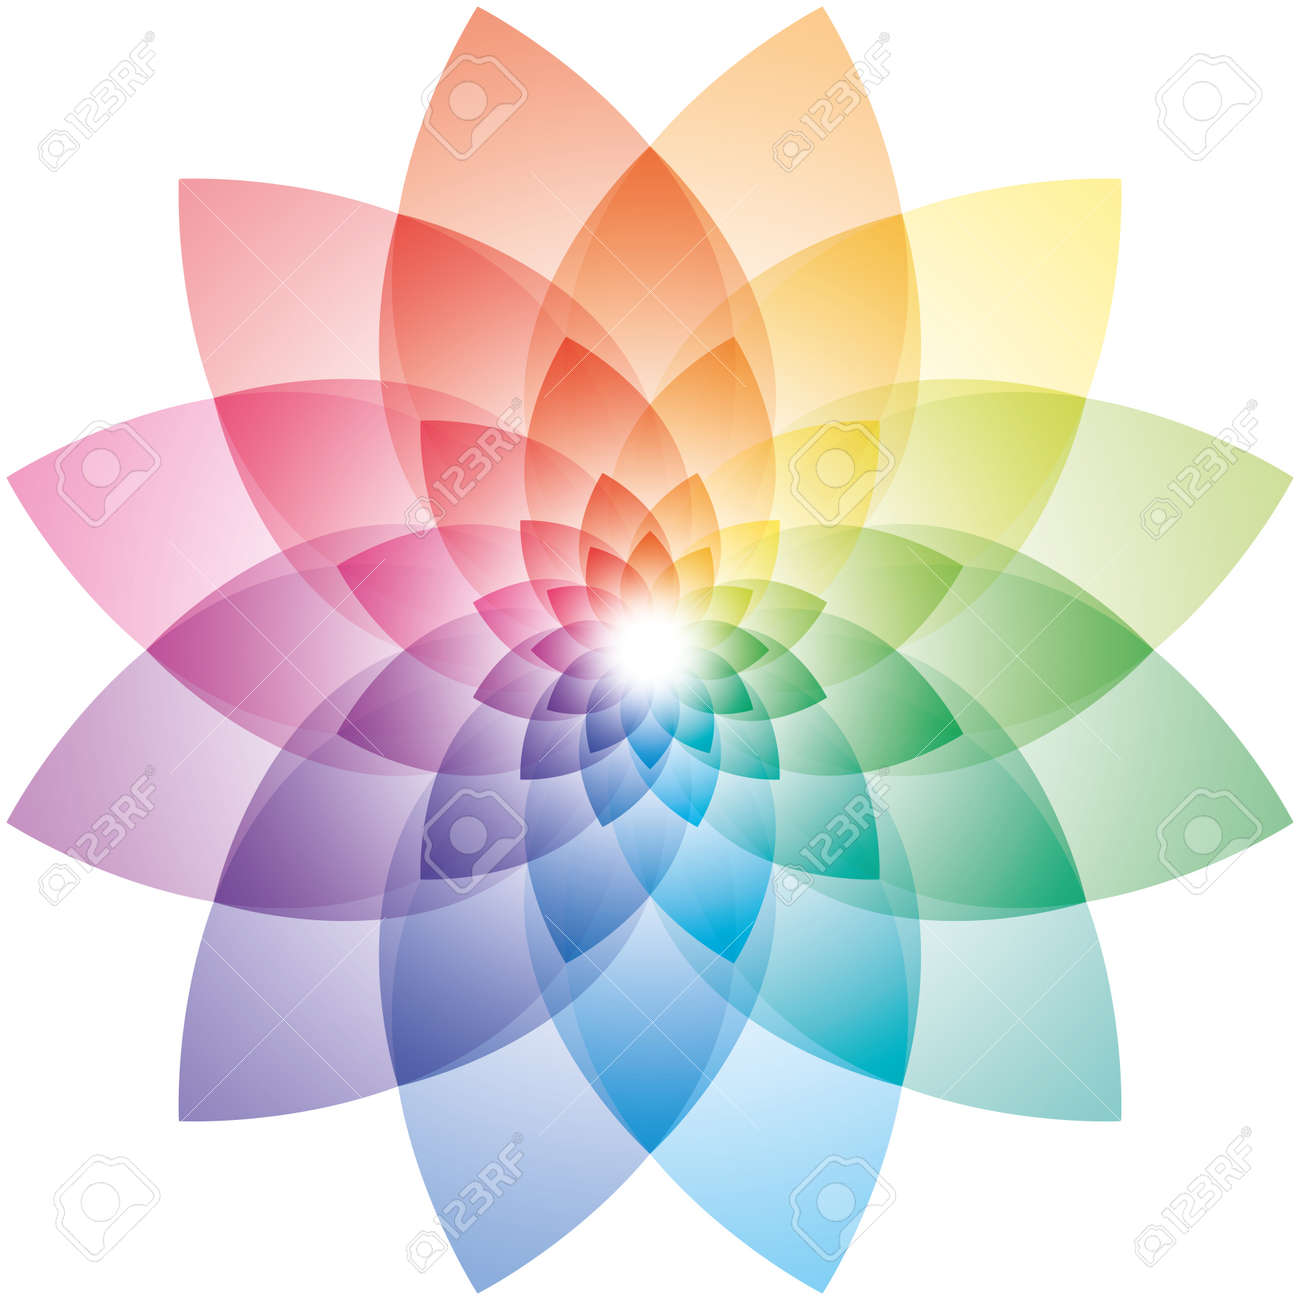 Beautiful Lotus Flower Color Wheel Vector EPS10 Stock